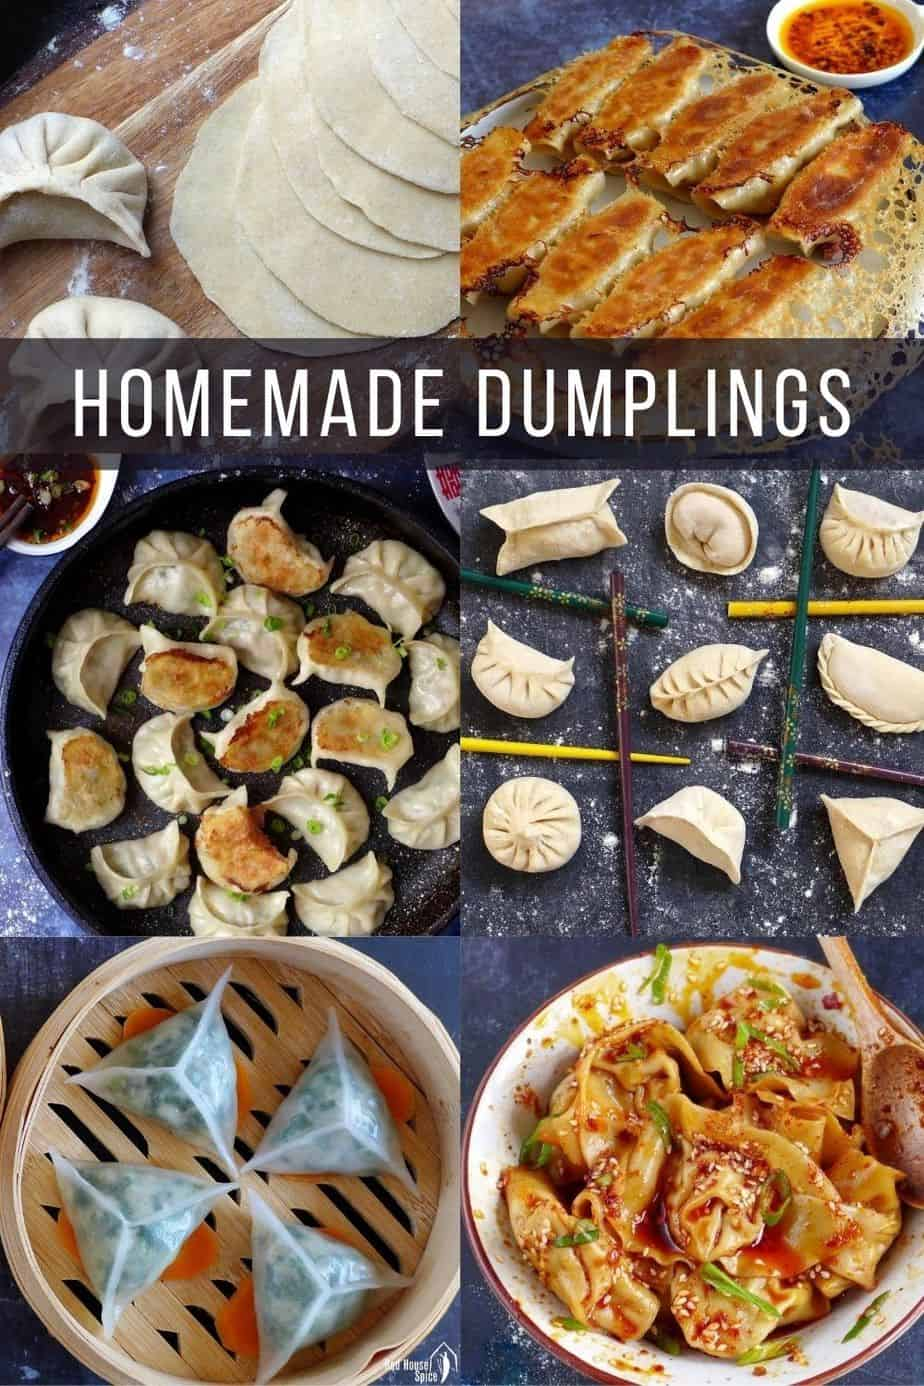 a collection of Chinese homemade dumplings